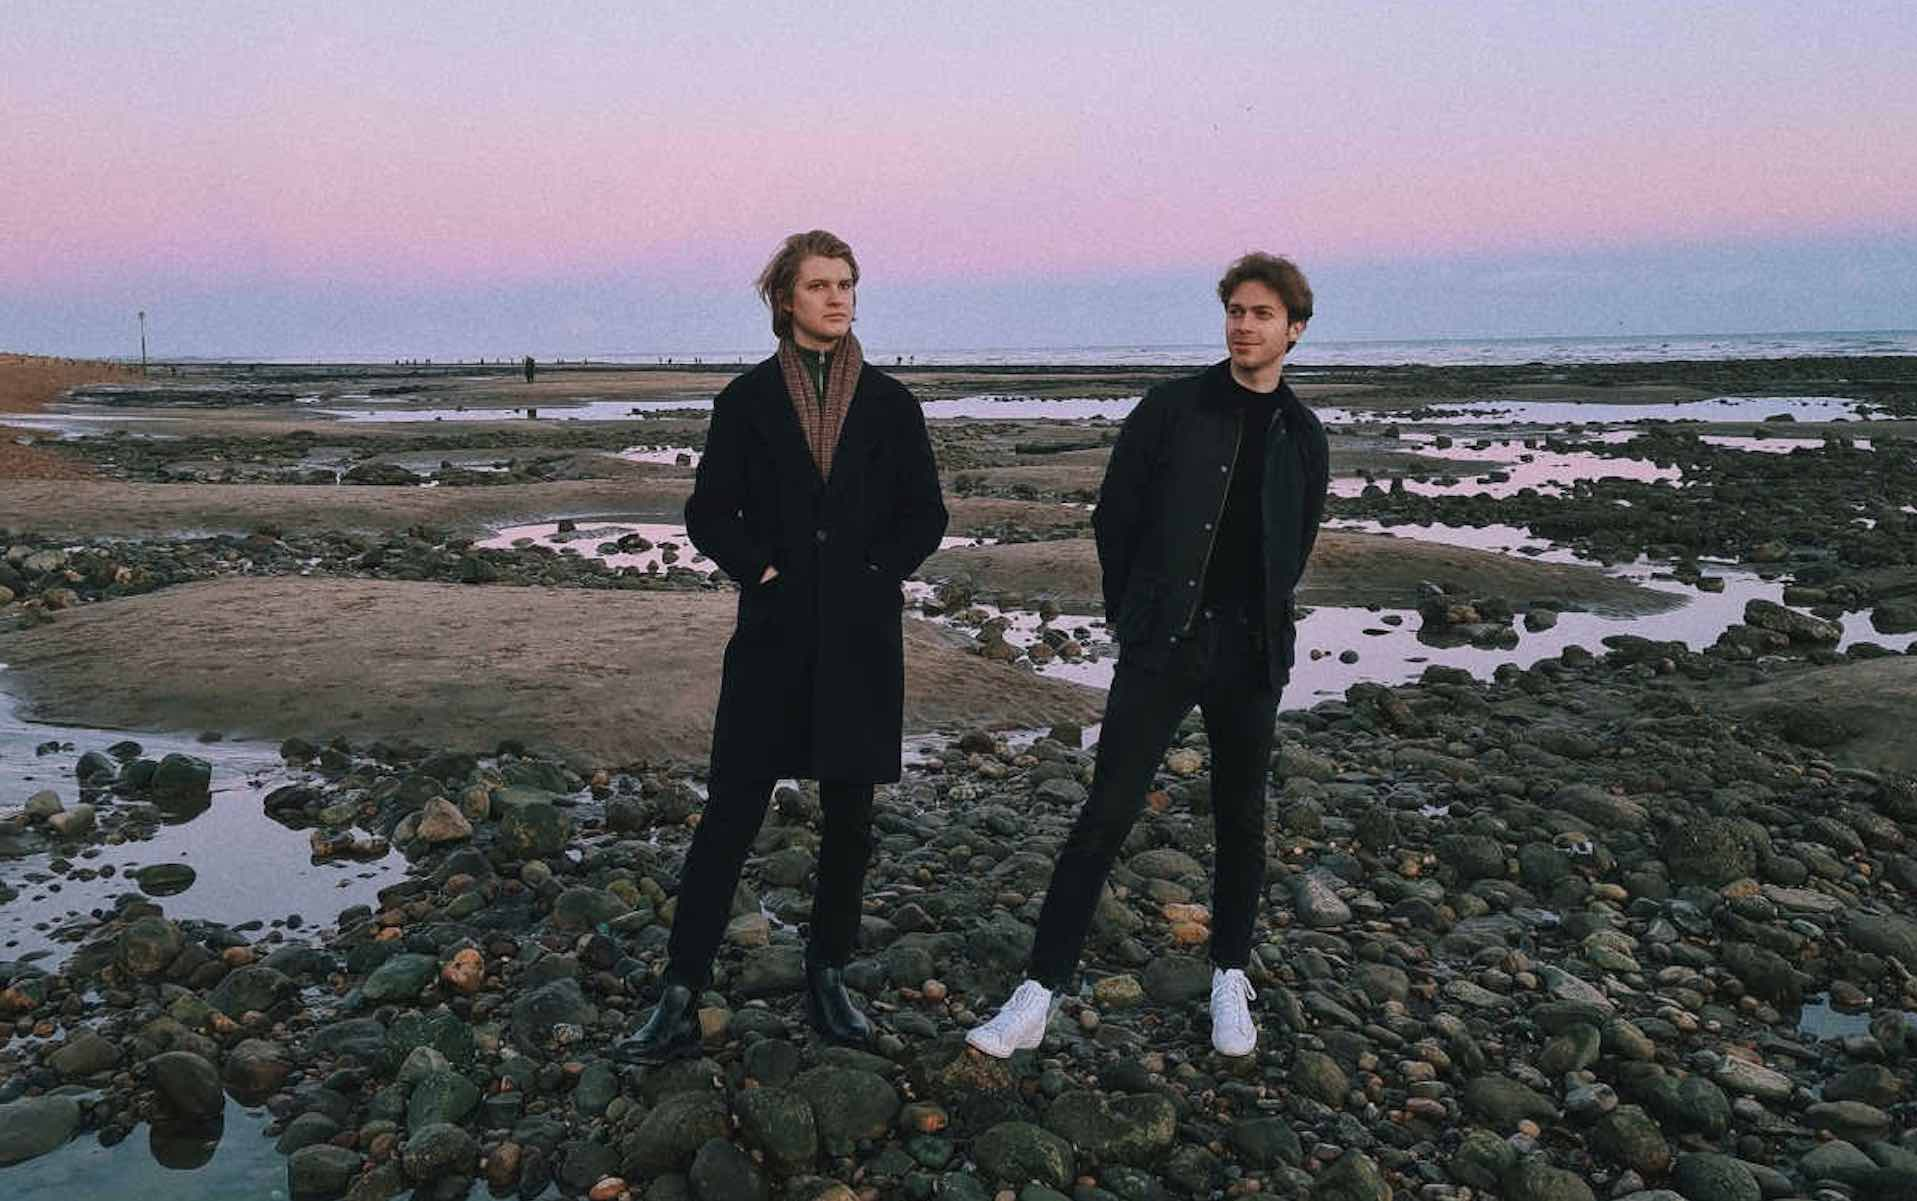 Pett Level dance on the glossy shores of psych-pop on 'Red Hot'